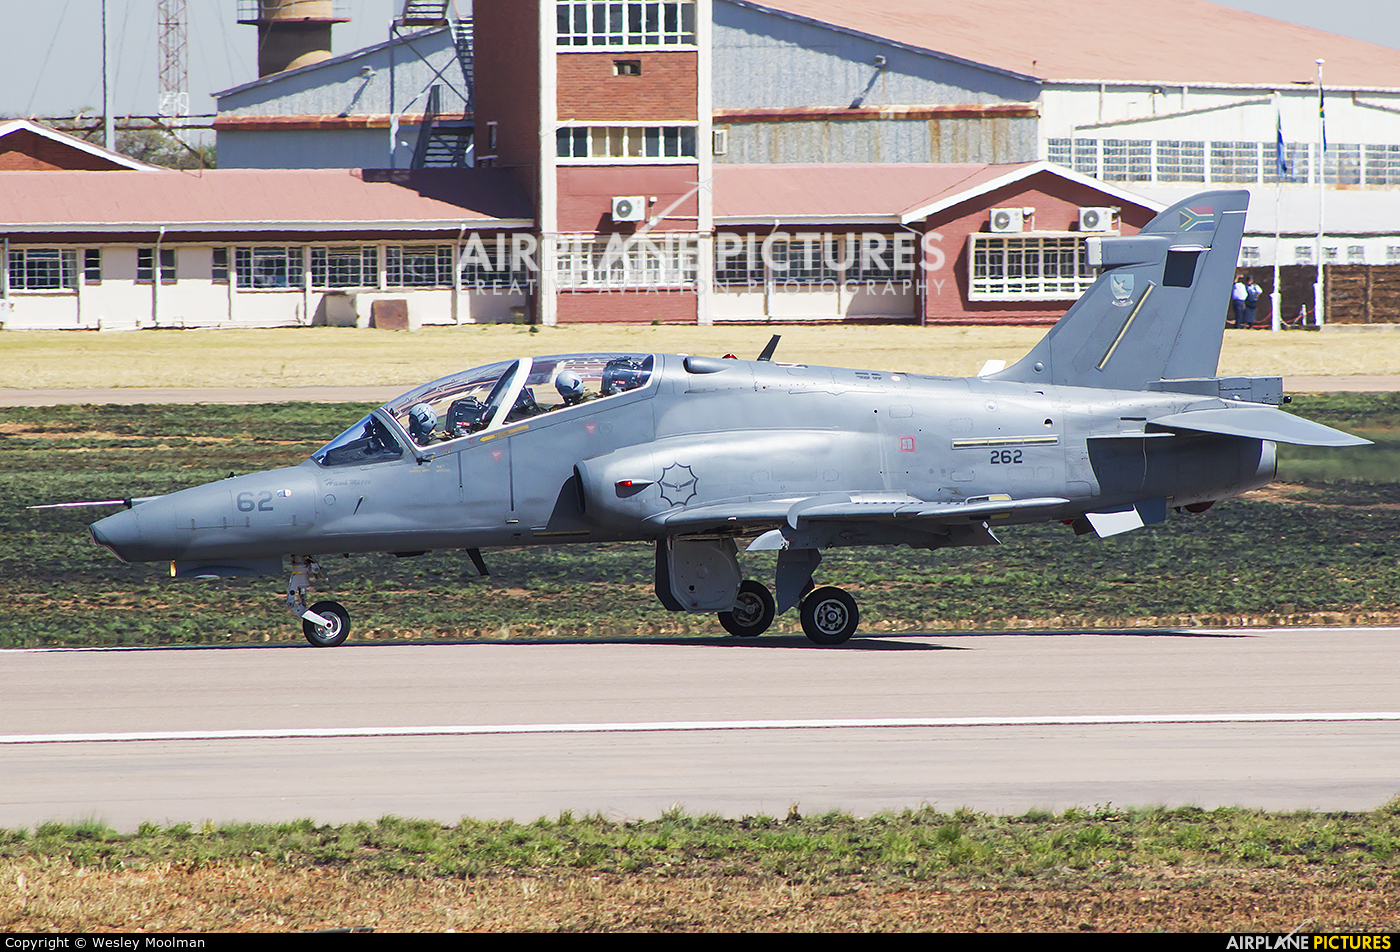 South Africa - Air Force 262 aircraft at Waterkloof